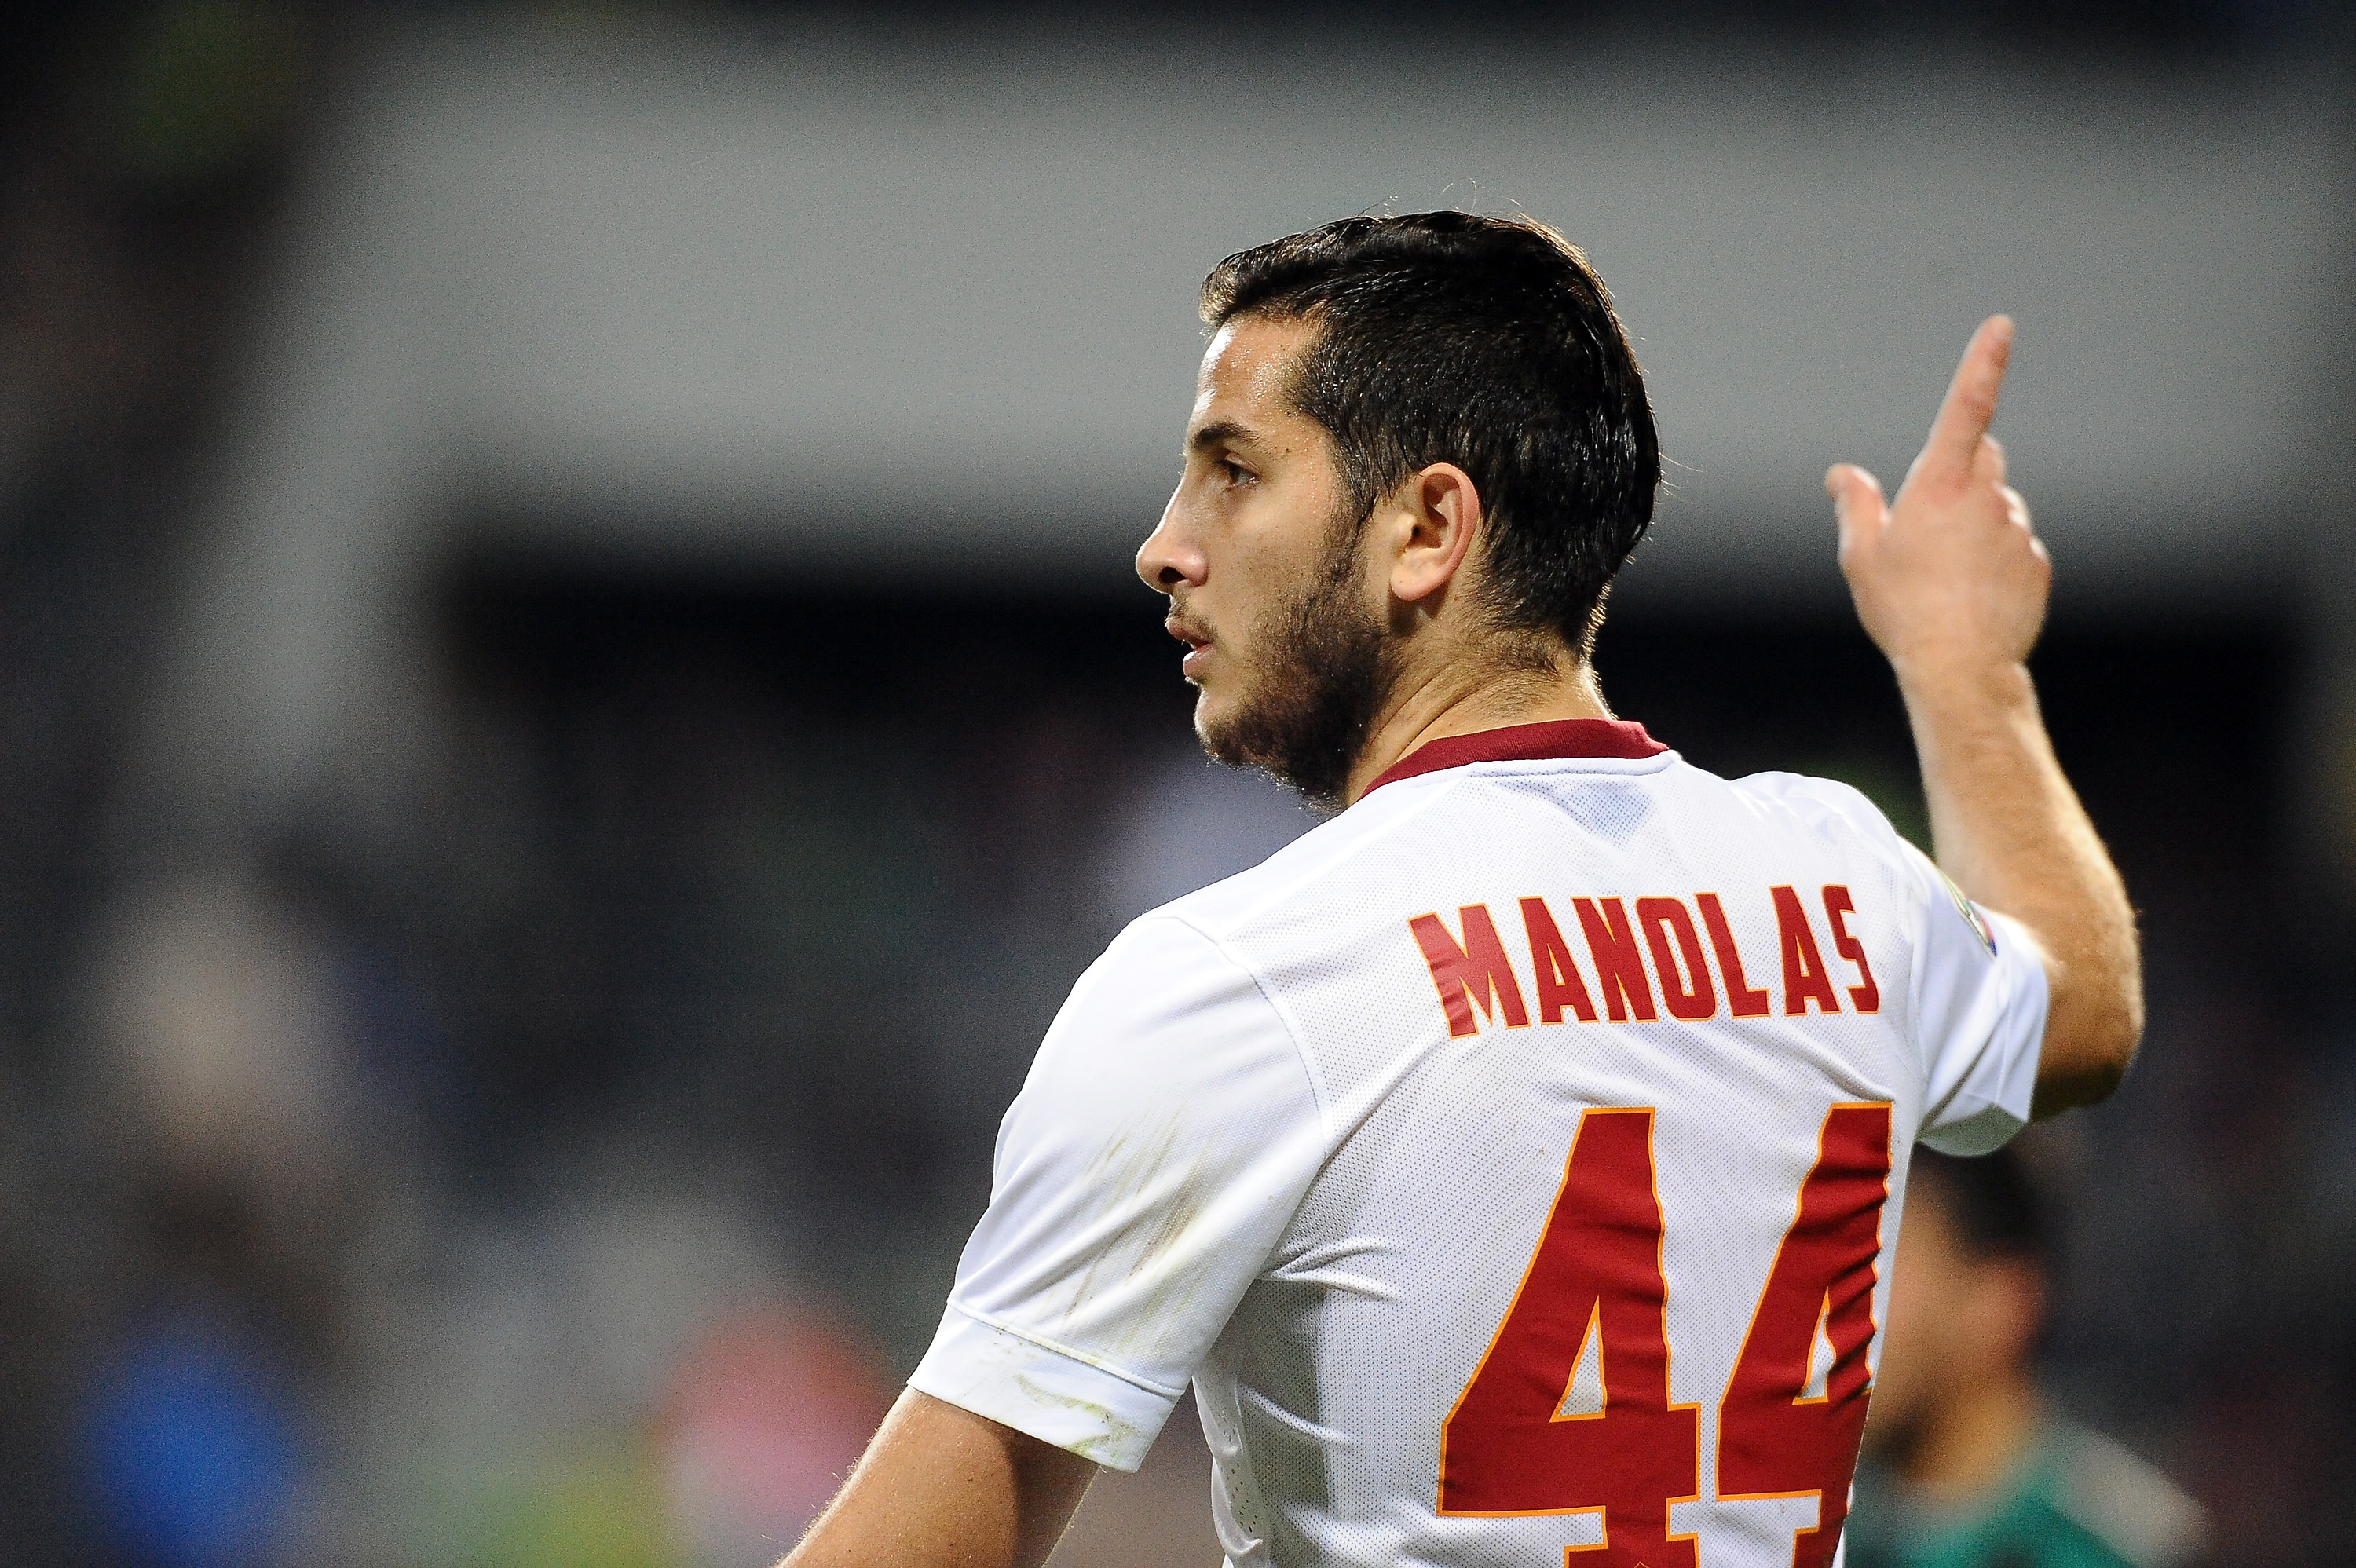 Kostas Manolas is just the type of player Arsenal need to buy in the summer transfer window